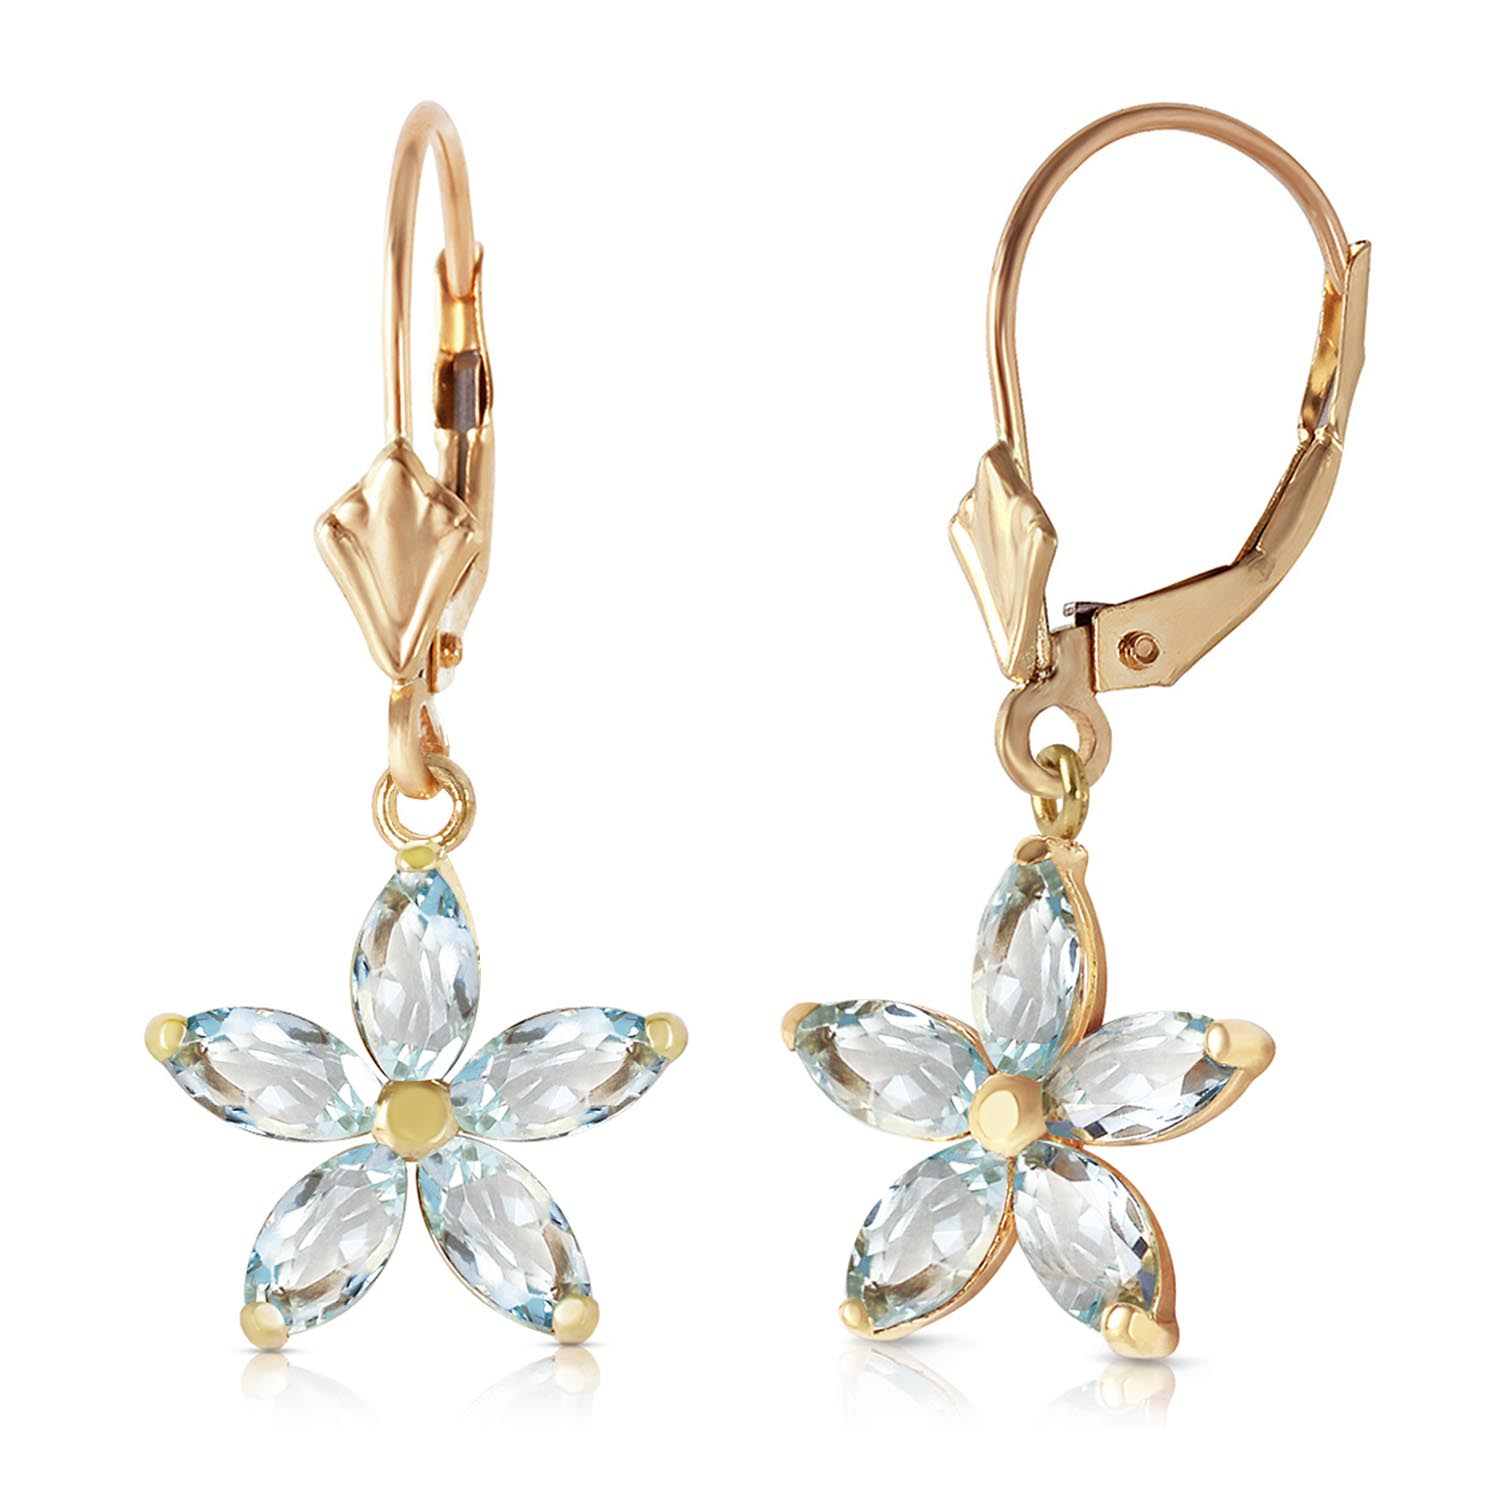 Aquamarine Flower Star Drop Earrings 2.8 ctw in 9ct Gold